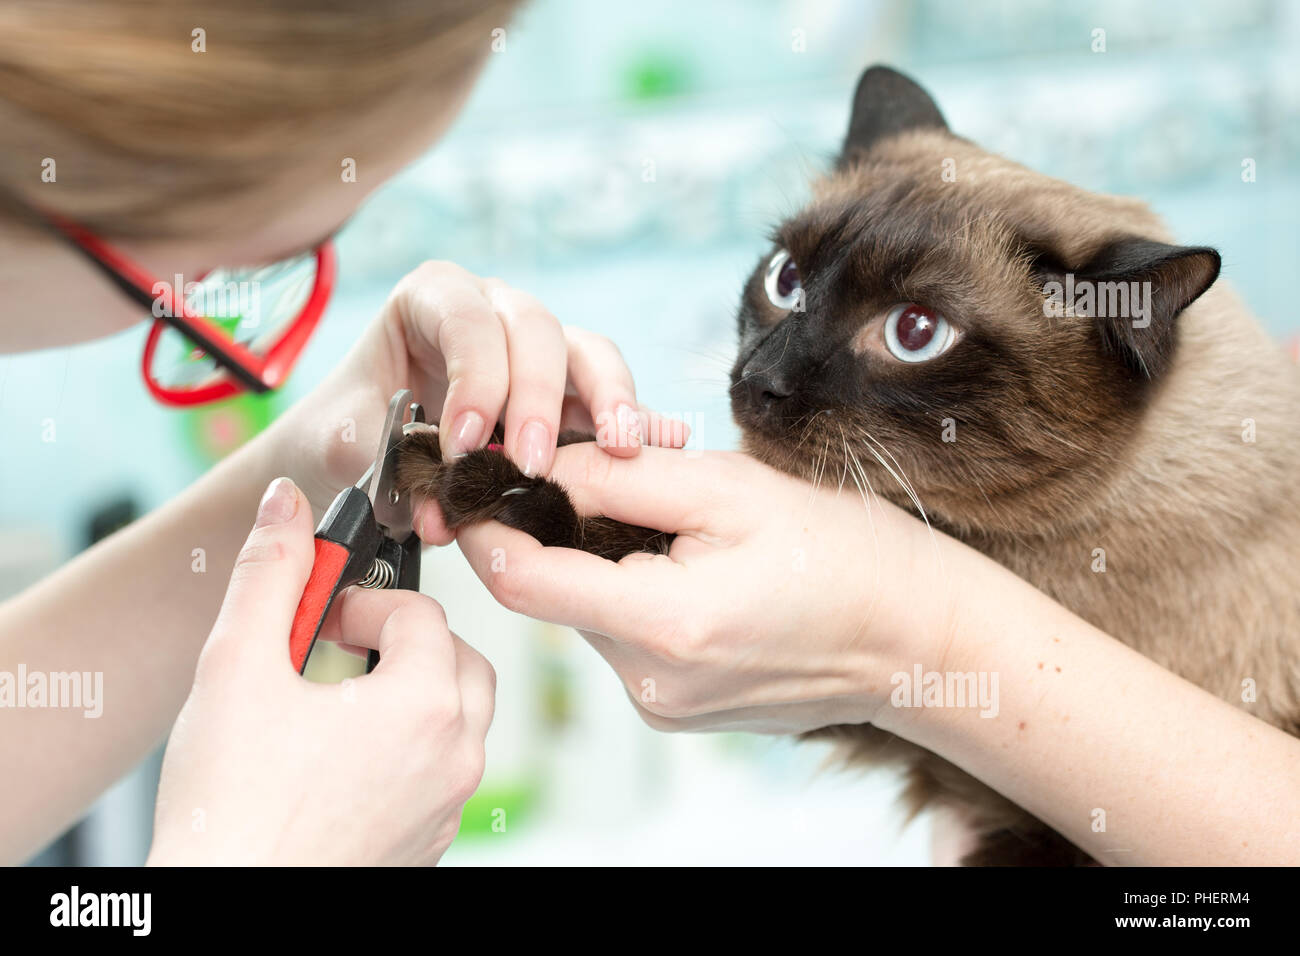 the vet cut the cats claws, white background - Stock Image